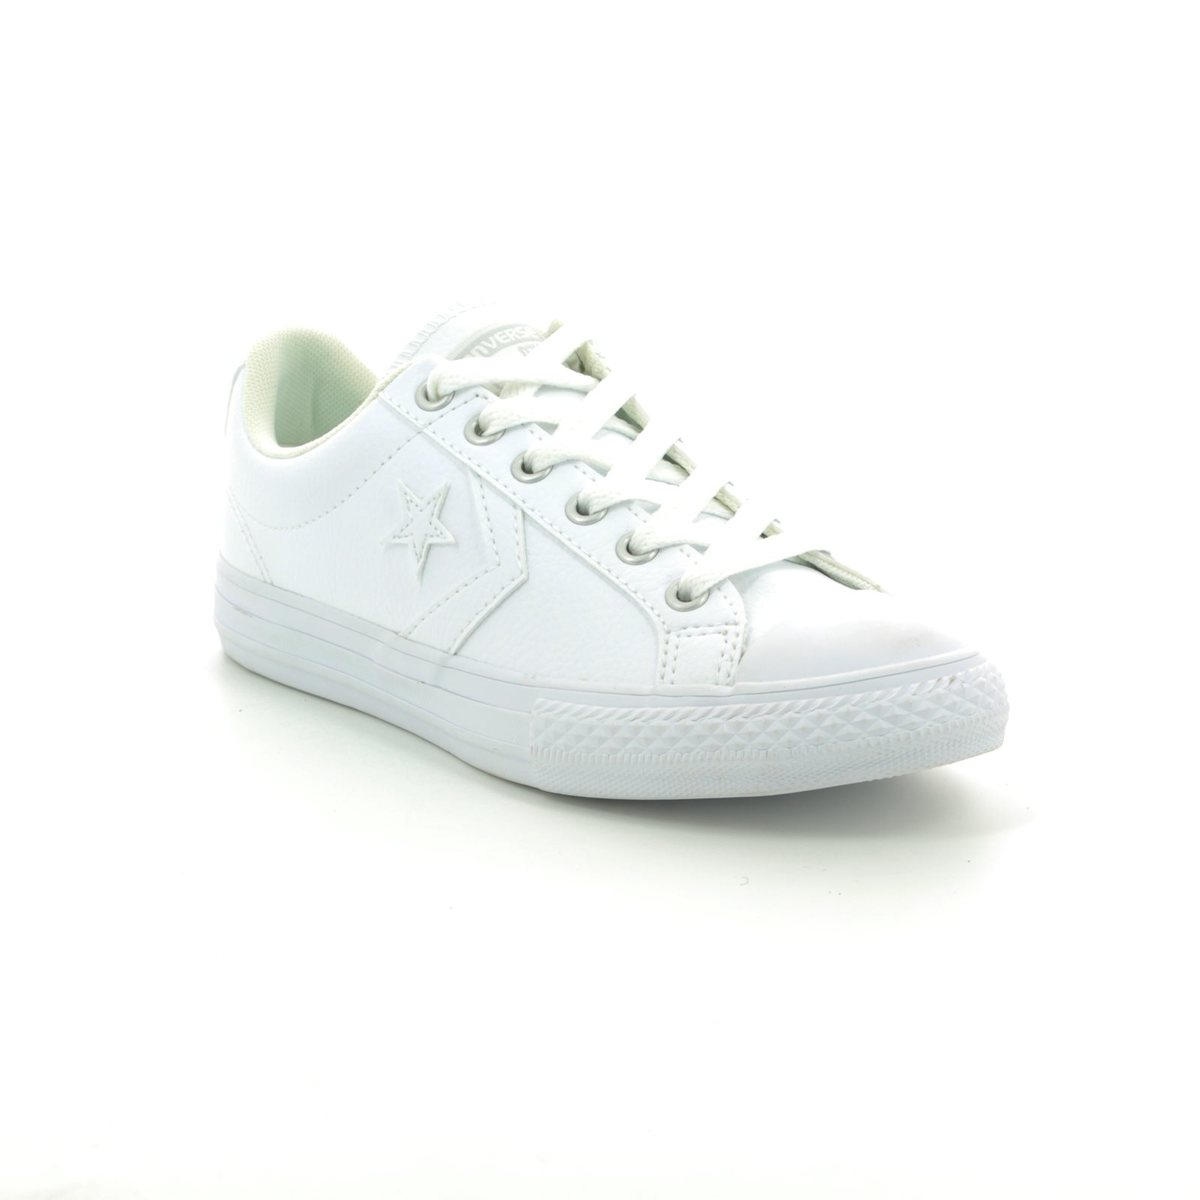 627be05a6e81 Converse Trainers - White - 651827C 100 Star Player EV OX White